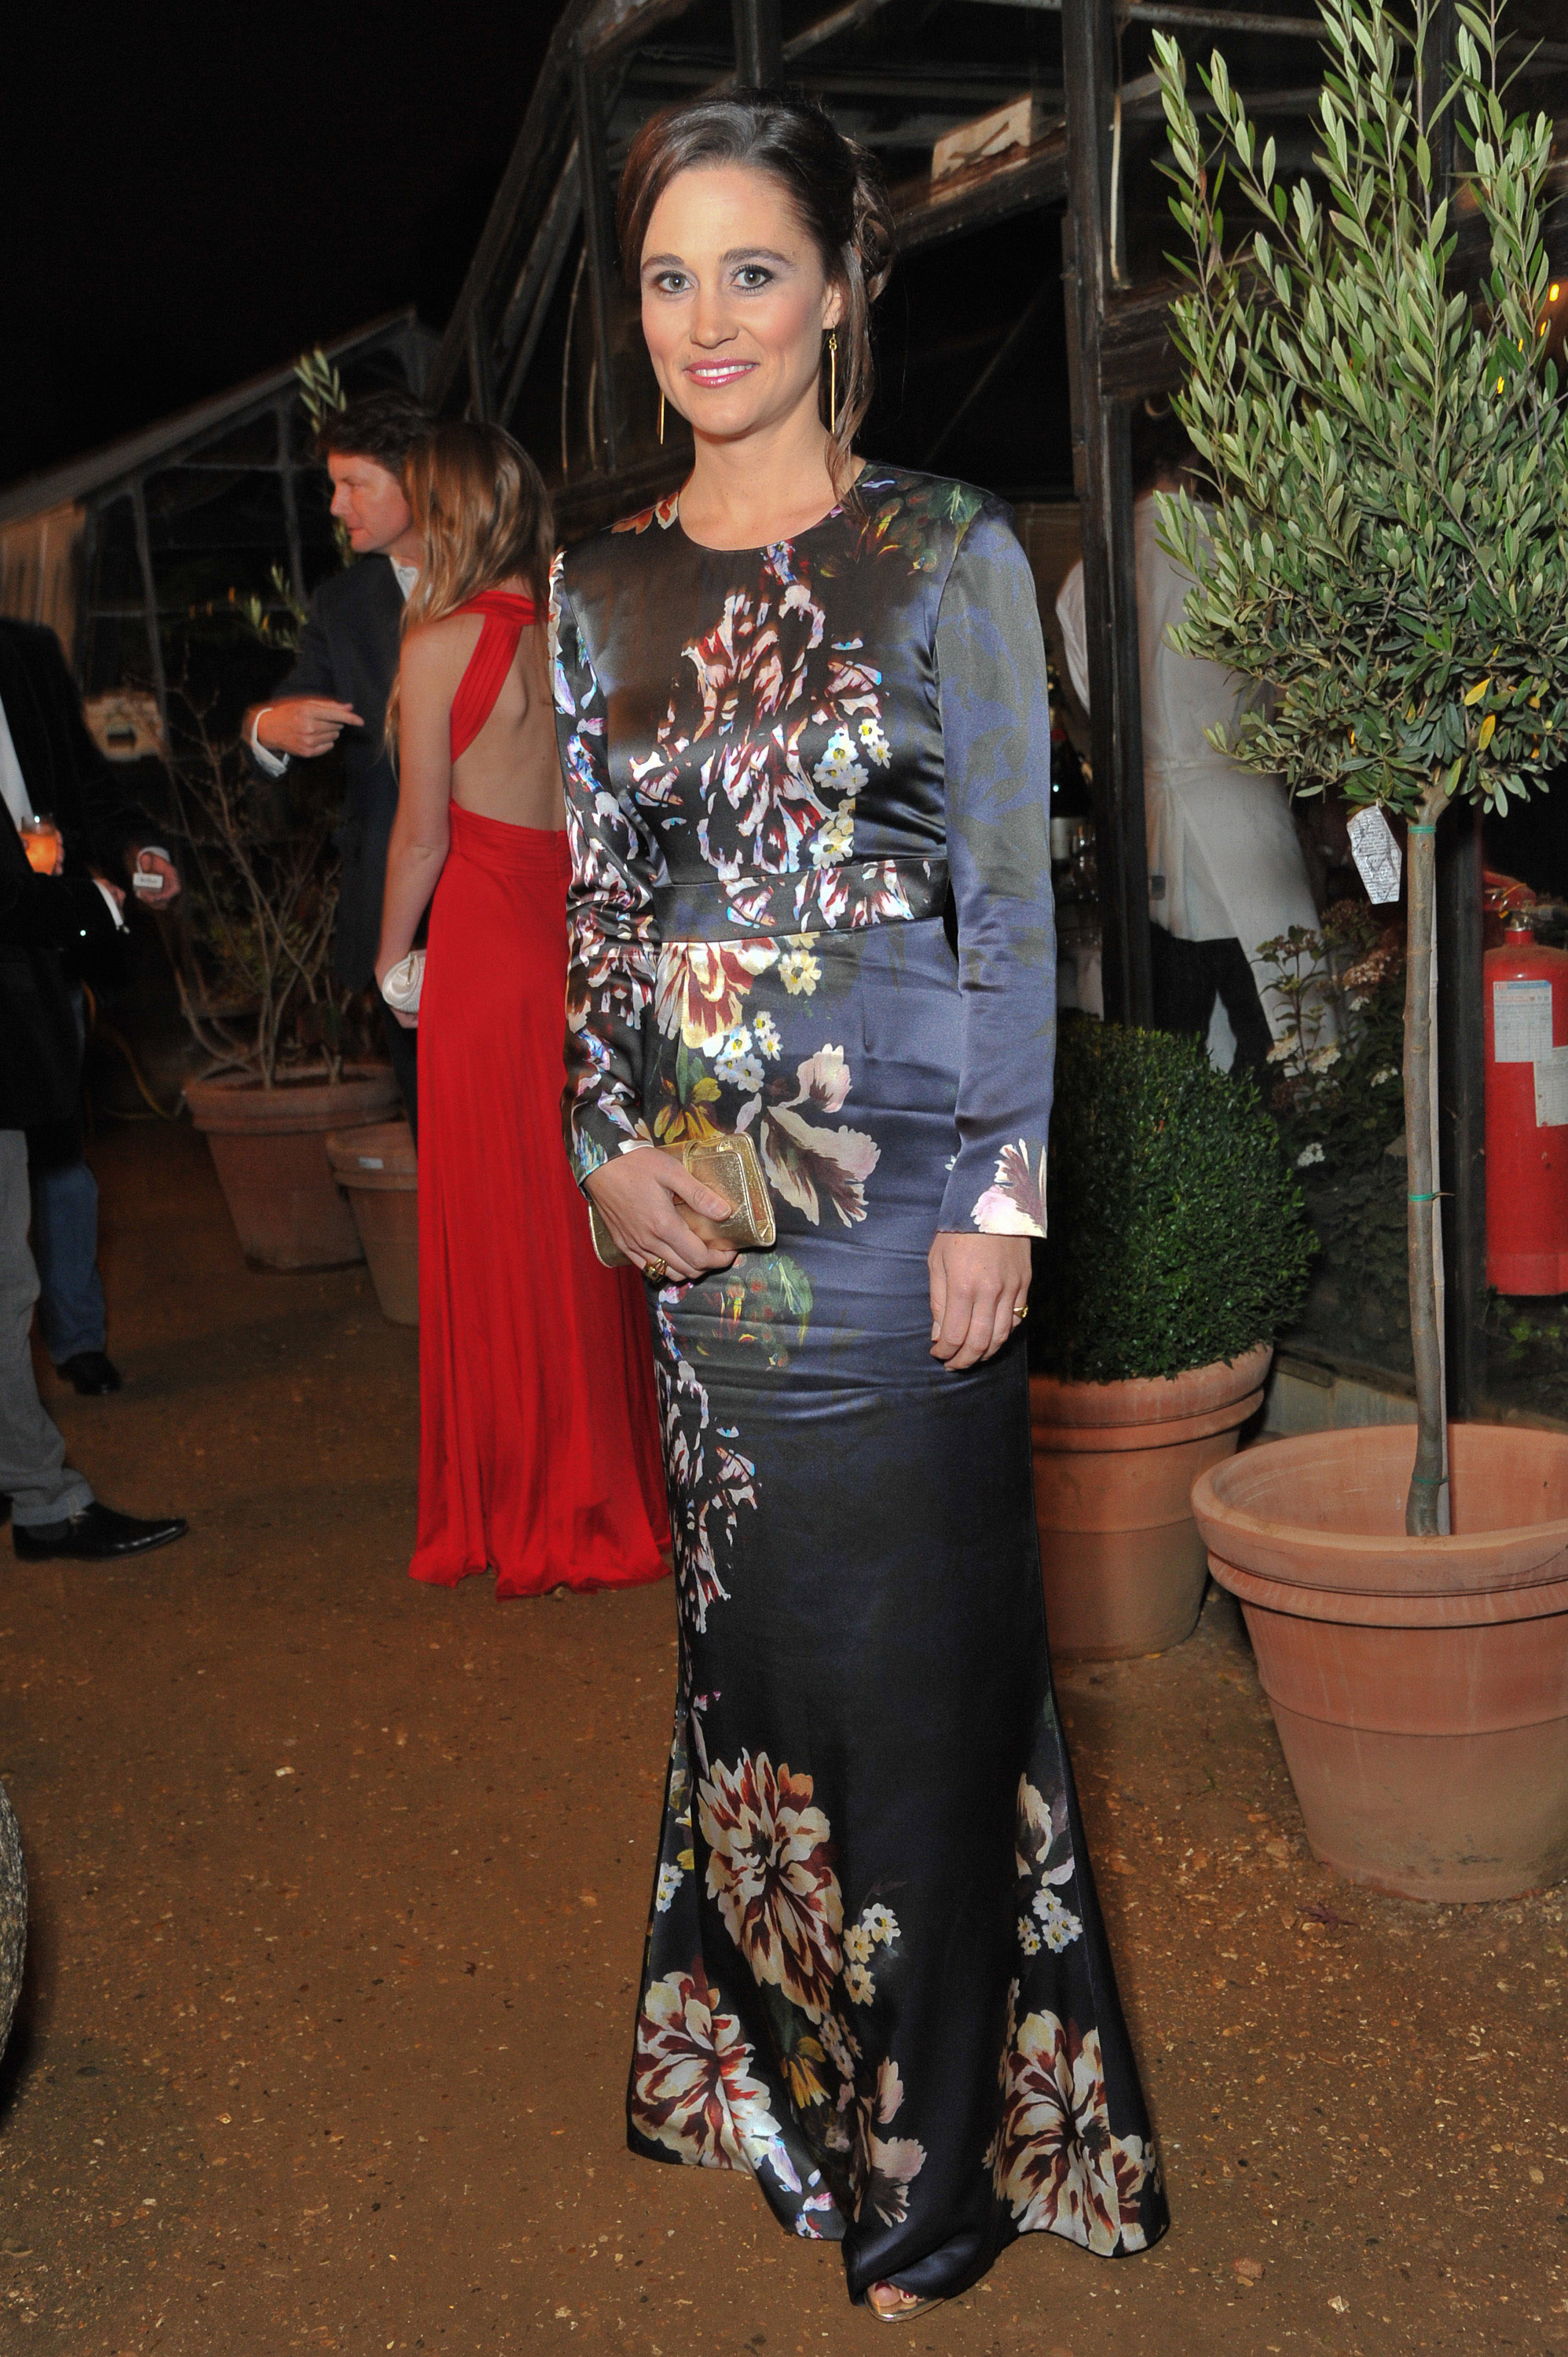 Pippa Middleton at a charity event in London.